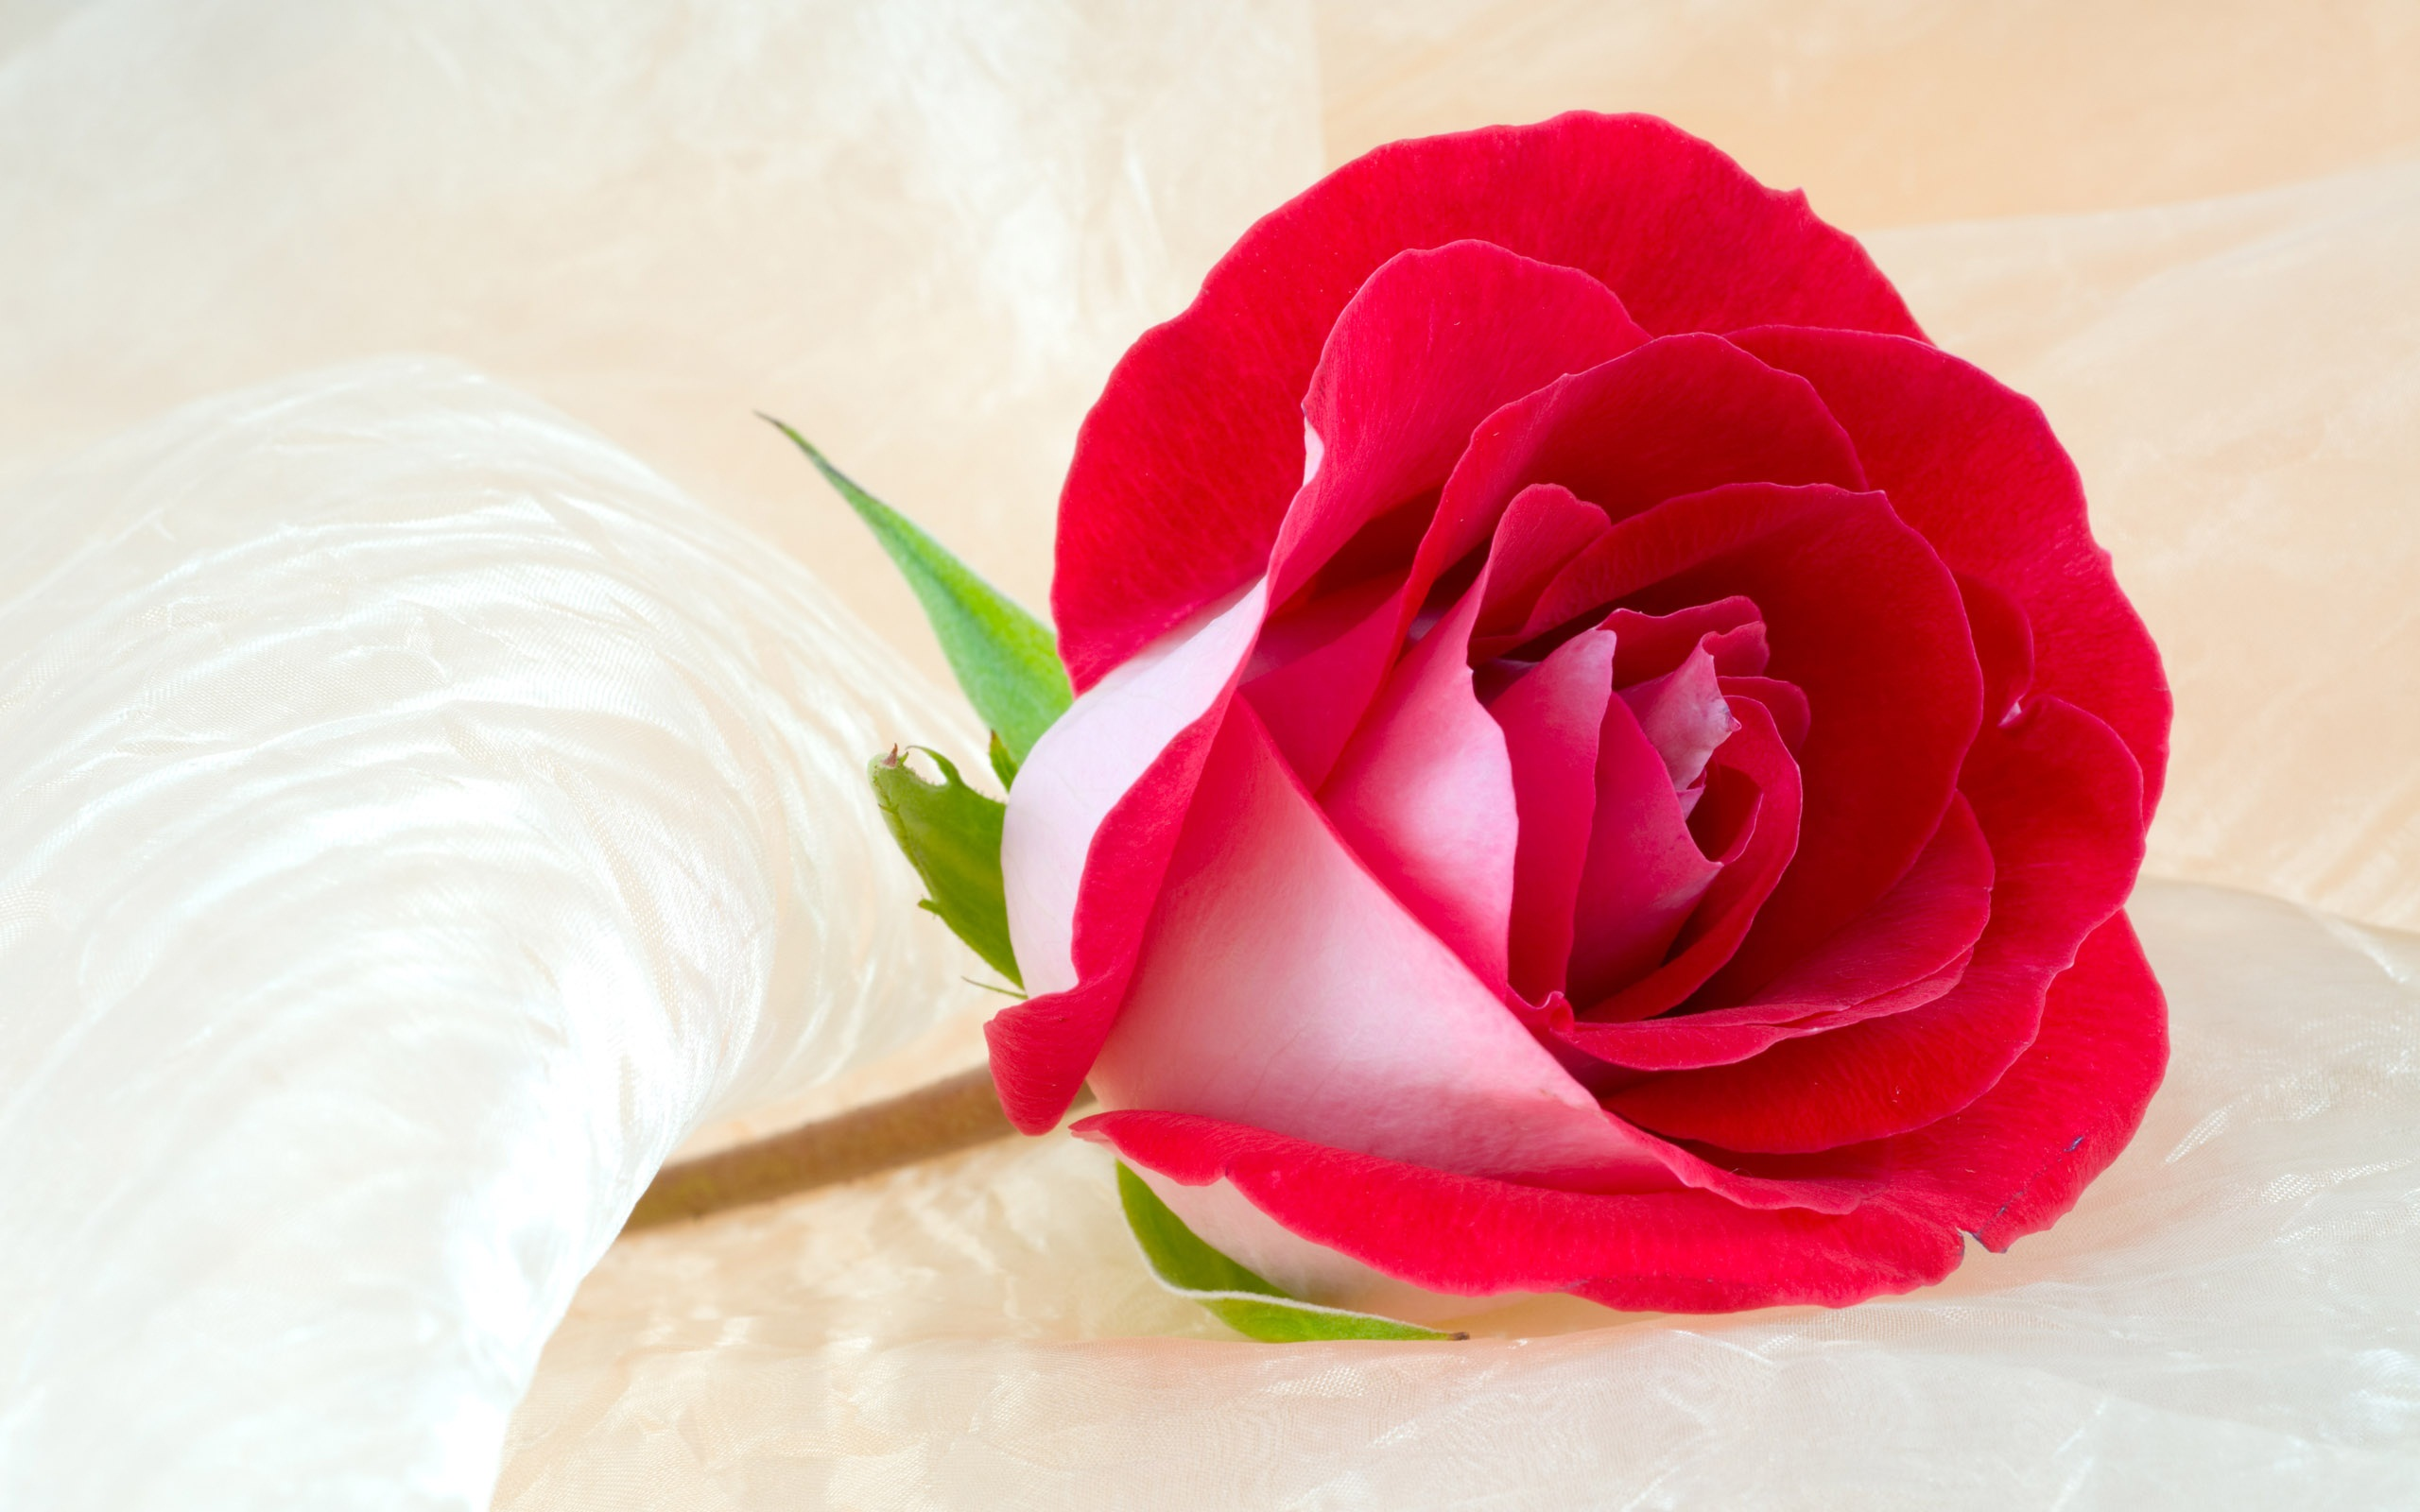 Rose Flower Most Beautiful Widescreen HD HD Wallpapers Rocks 2560x1600